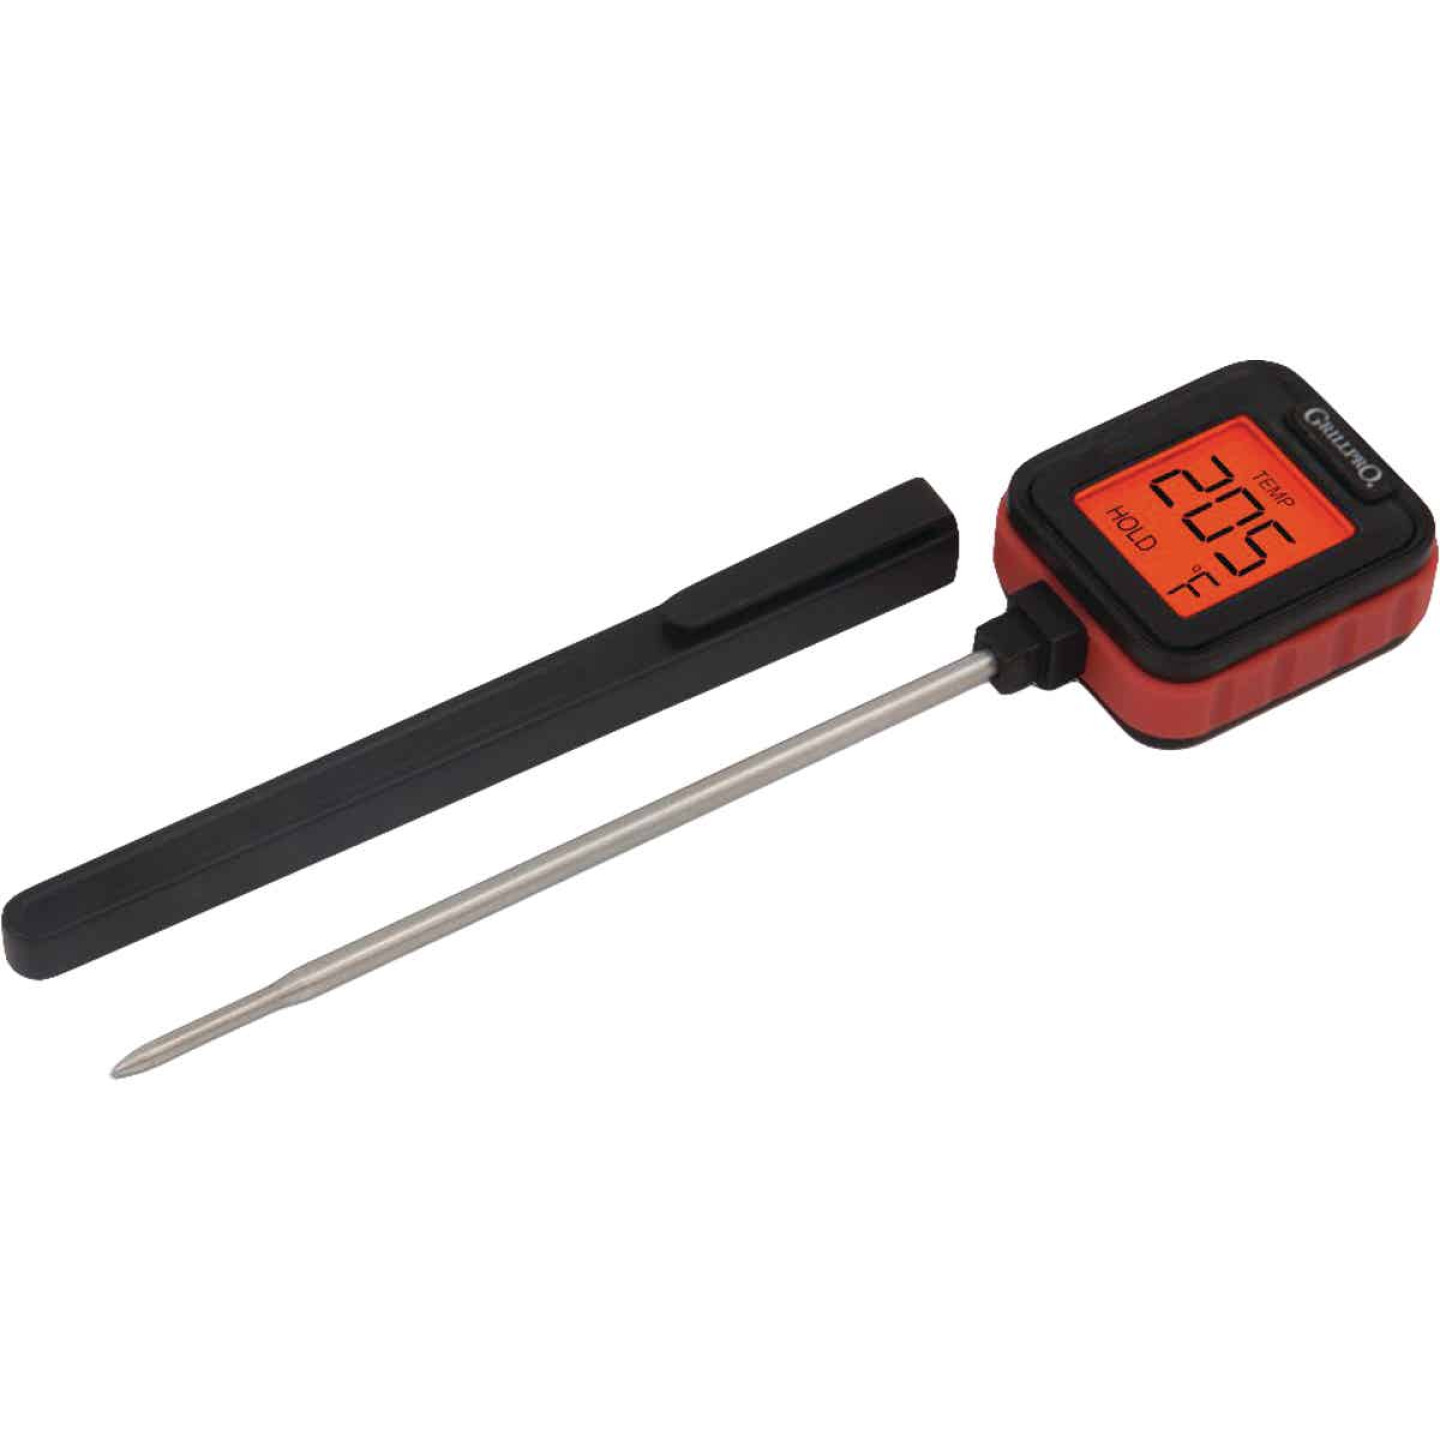 GrillPro Instant Read Probe Thermometer Image 4